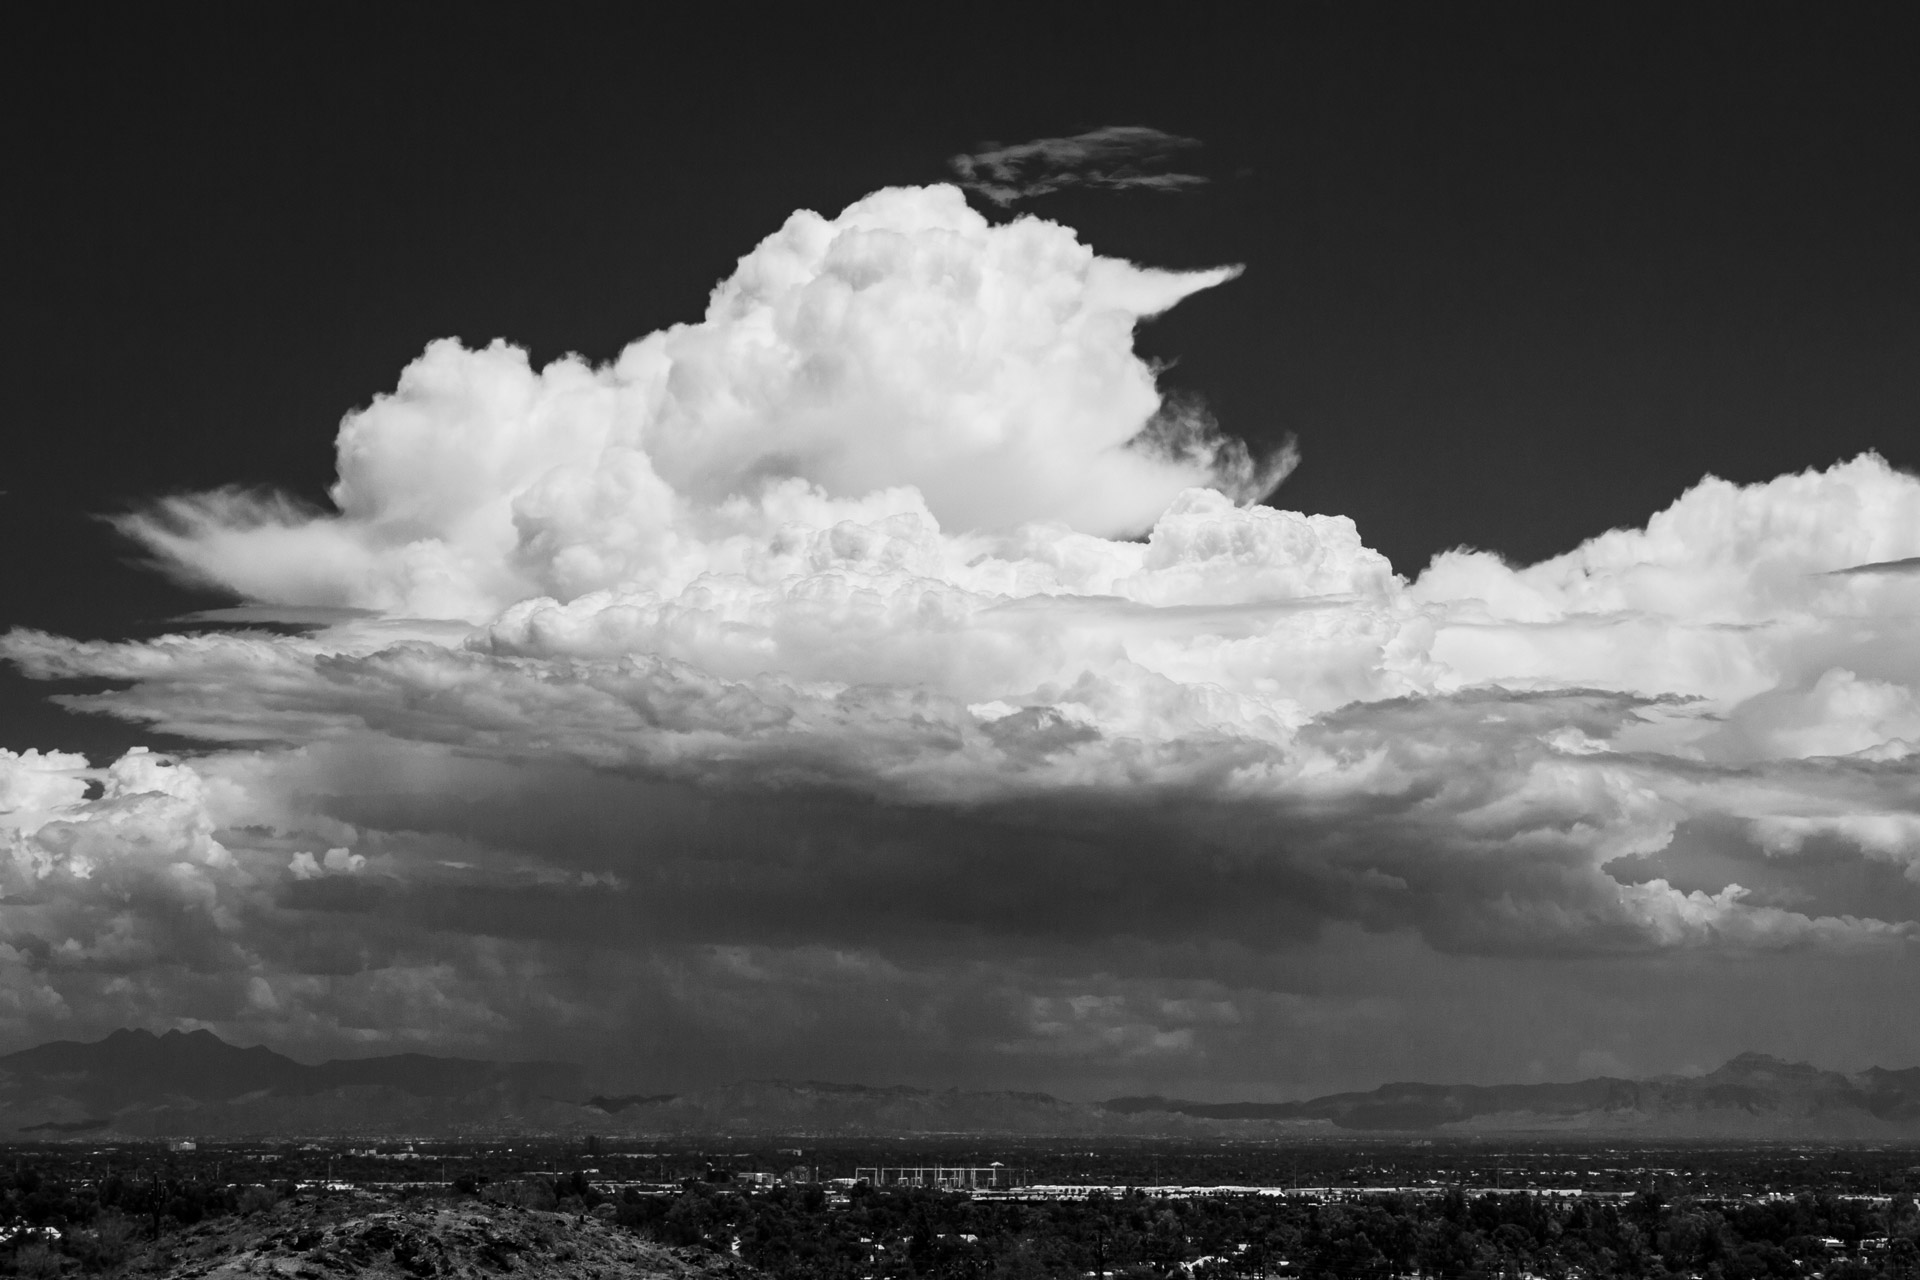 A storm builds over the East Valley